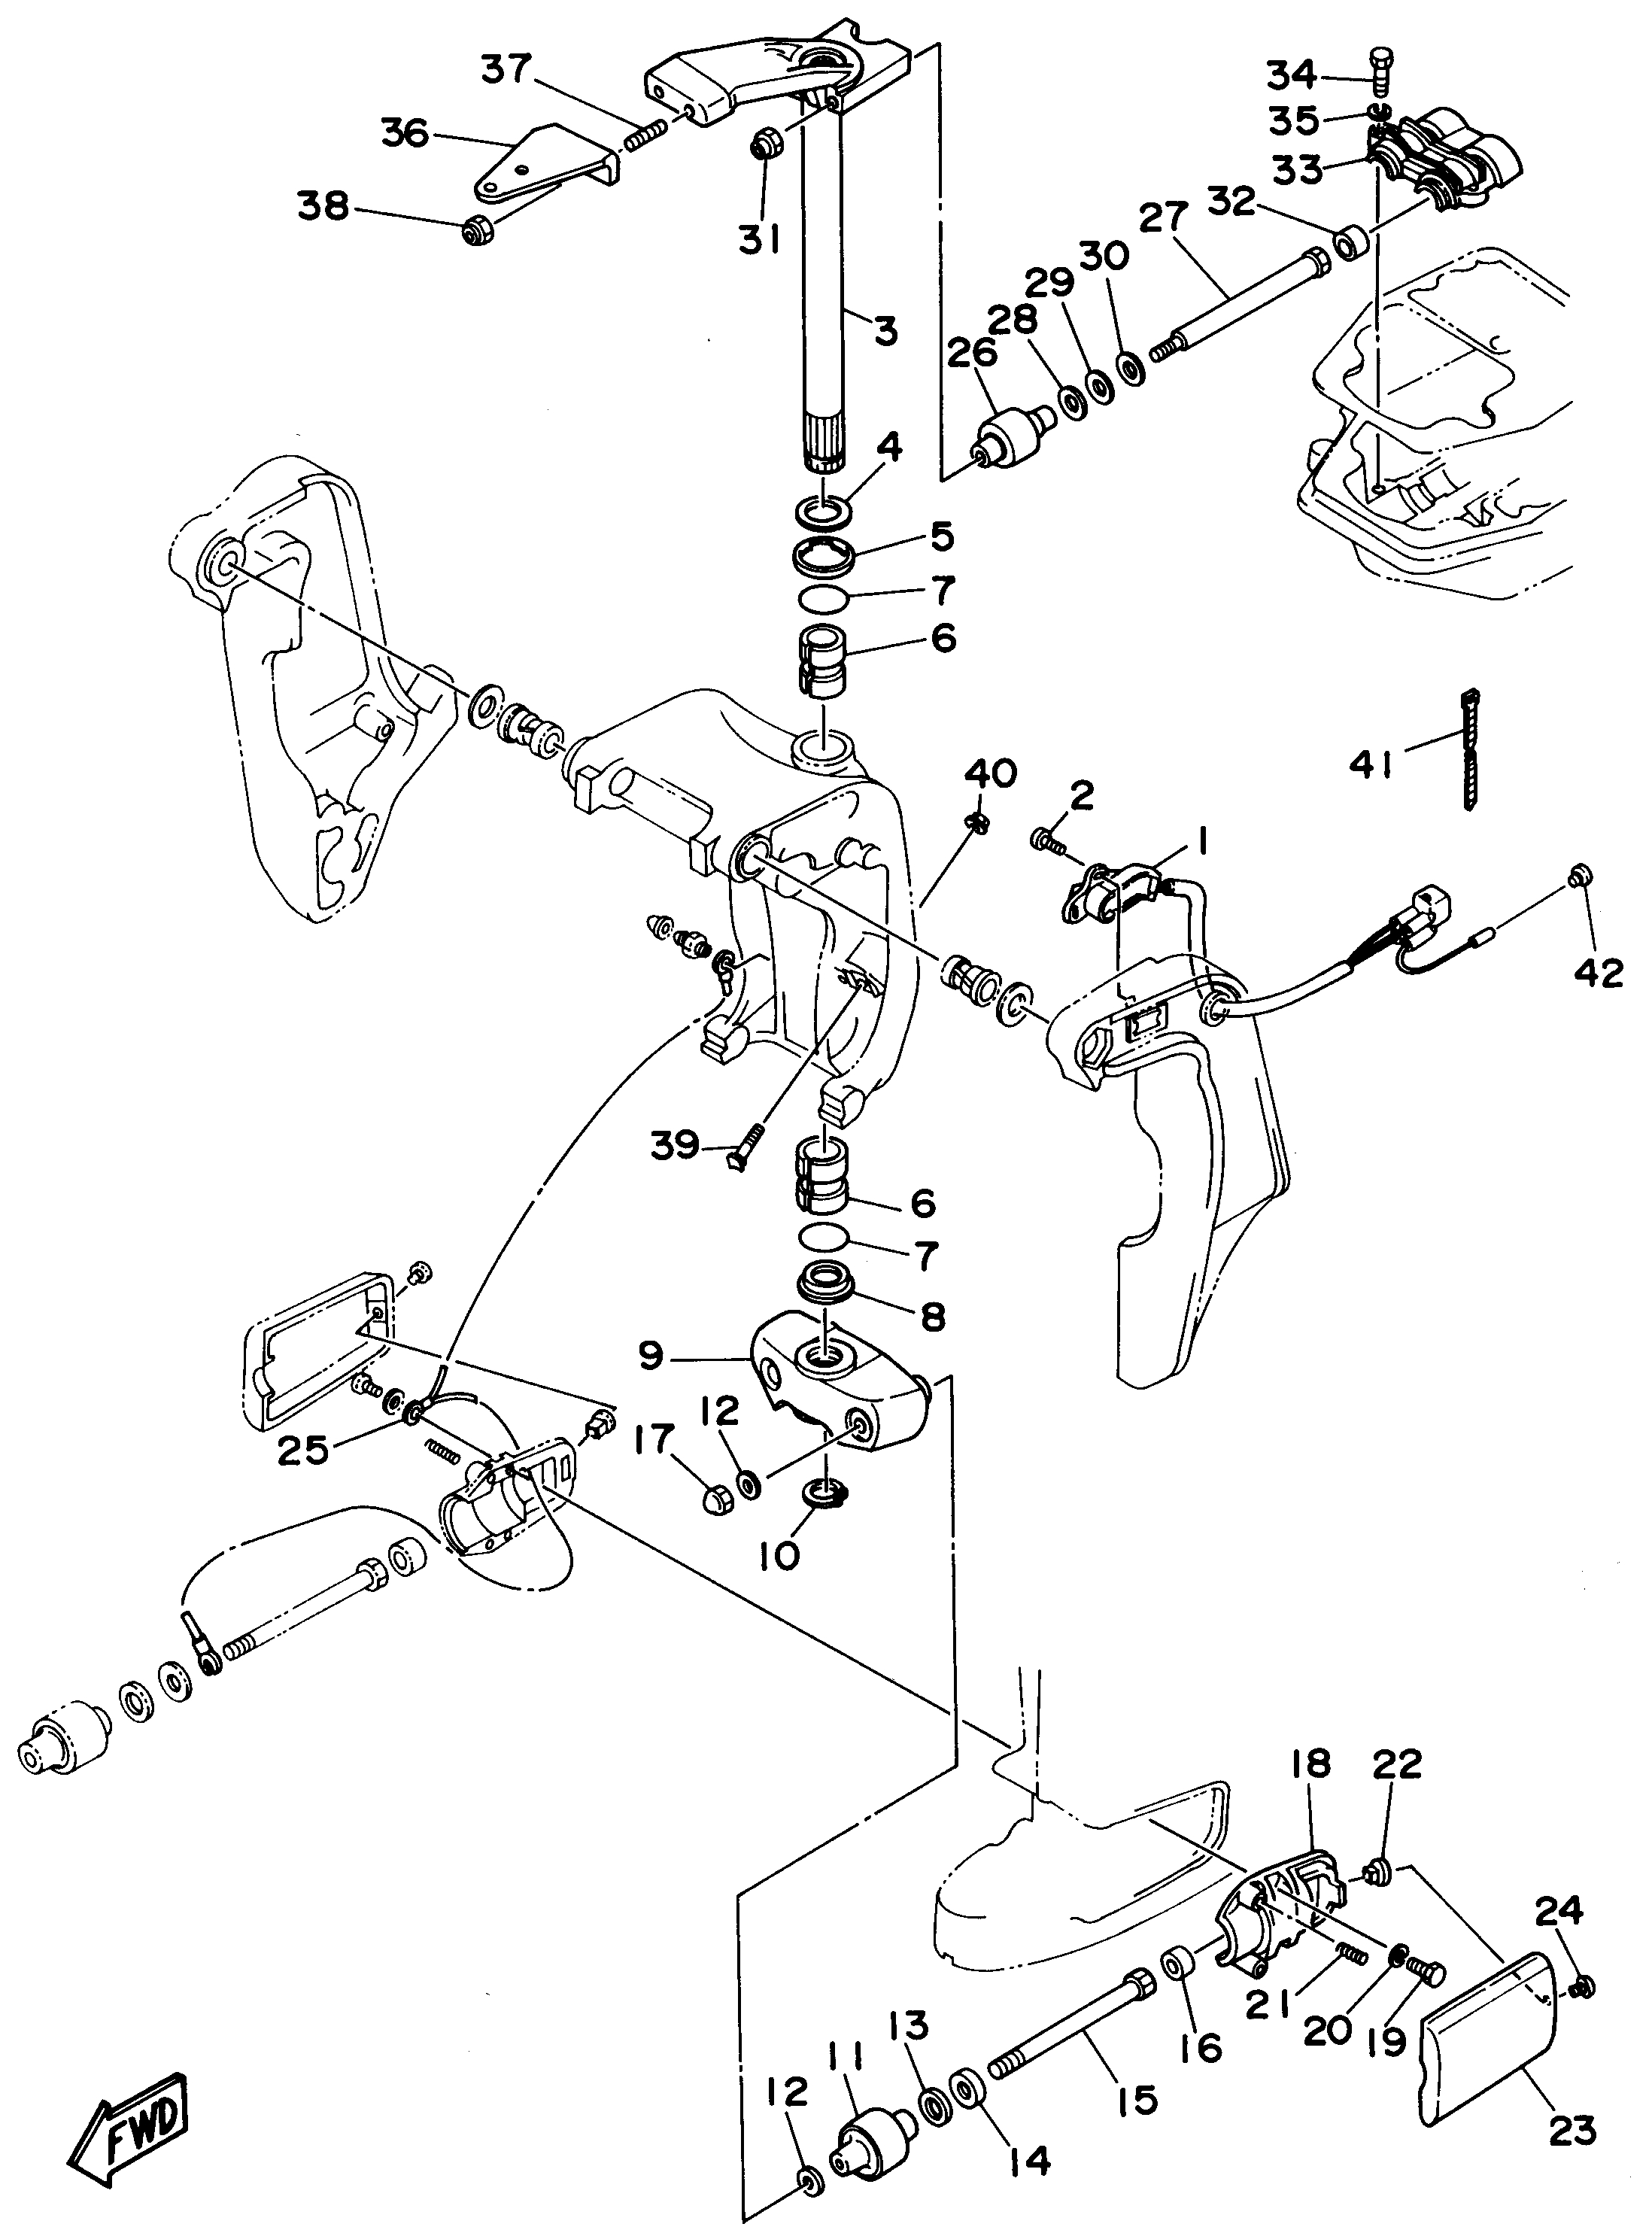 25 hp johnson outboard parts diagram automotive parts. Black Bedroom Furniture Sets. Home Design Ideas